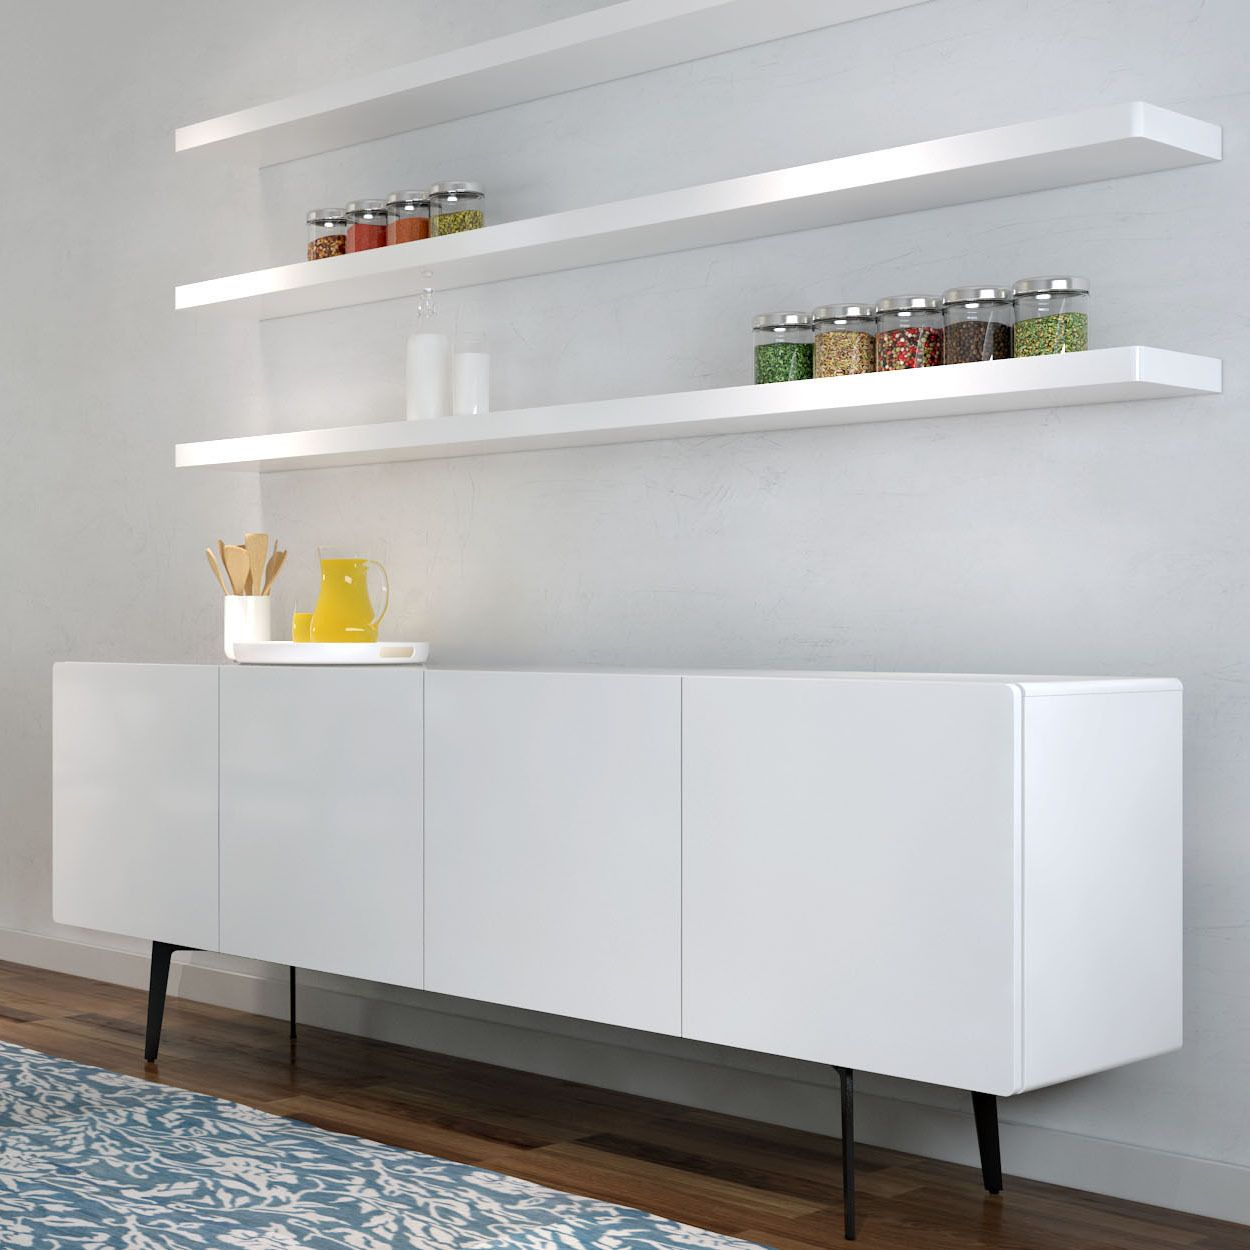 Cityside Furniture Brando Sideboard With Shelves 403 White Gloss 2 656 00 Floating